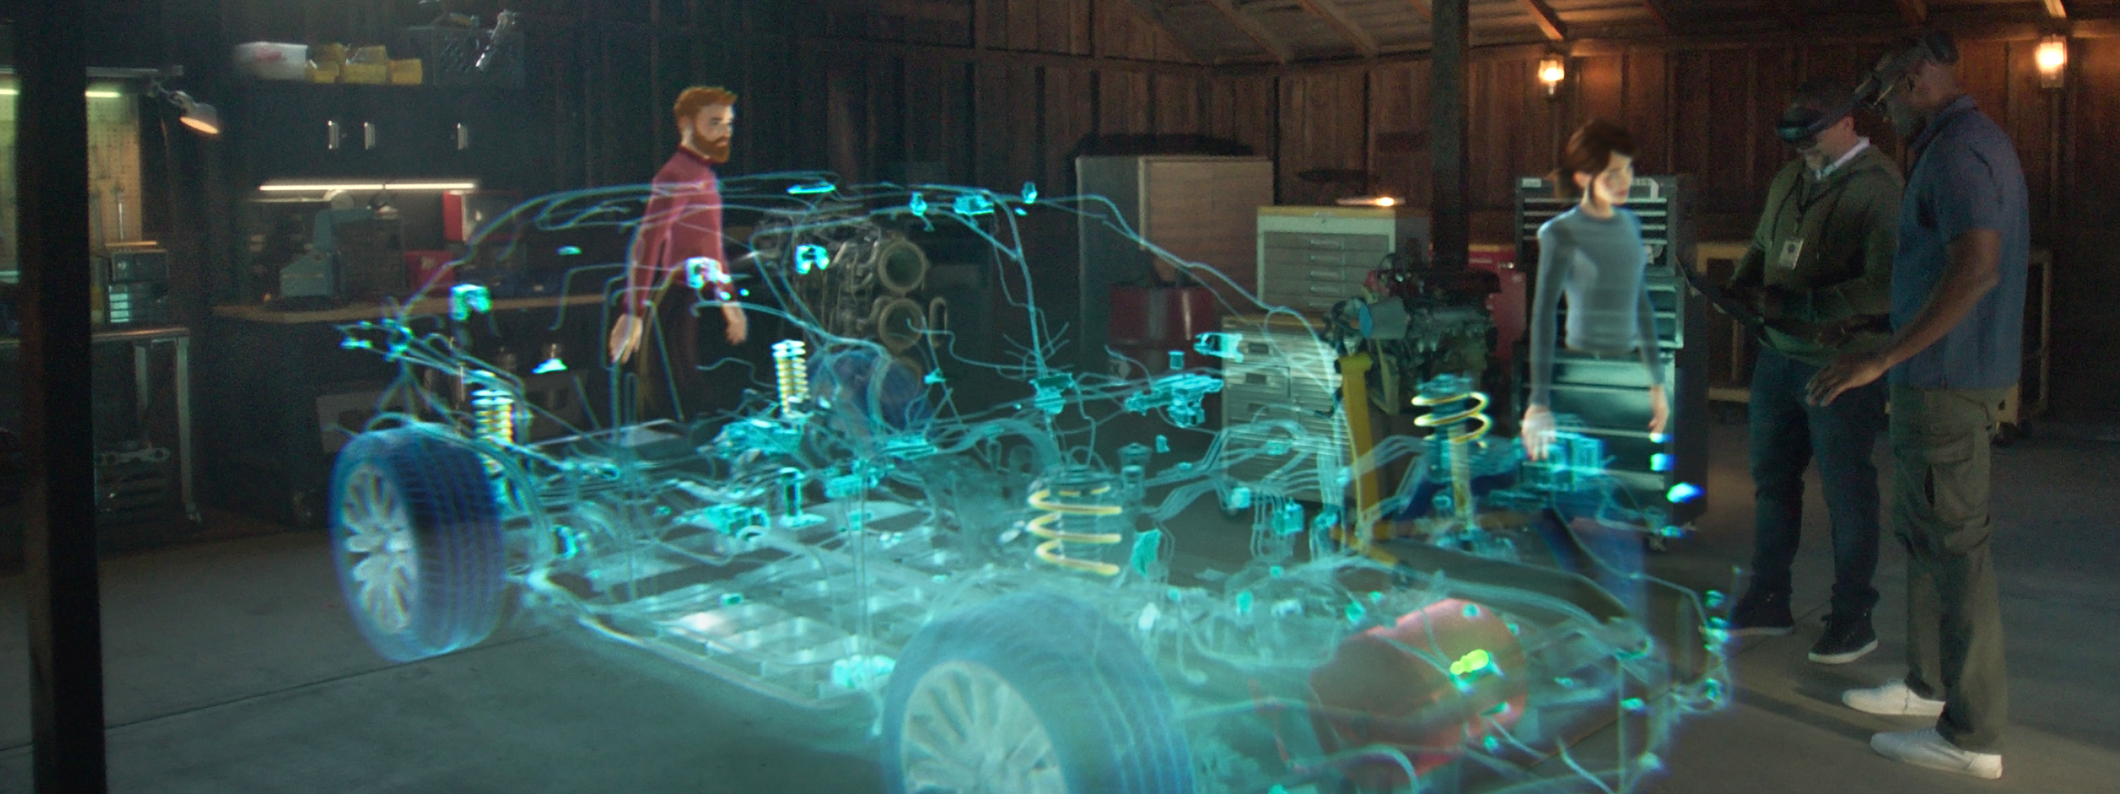 Two people wearing Hololenses interacting with a visualization of a car and two avatars representing other users.